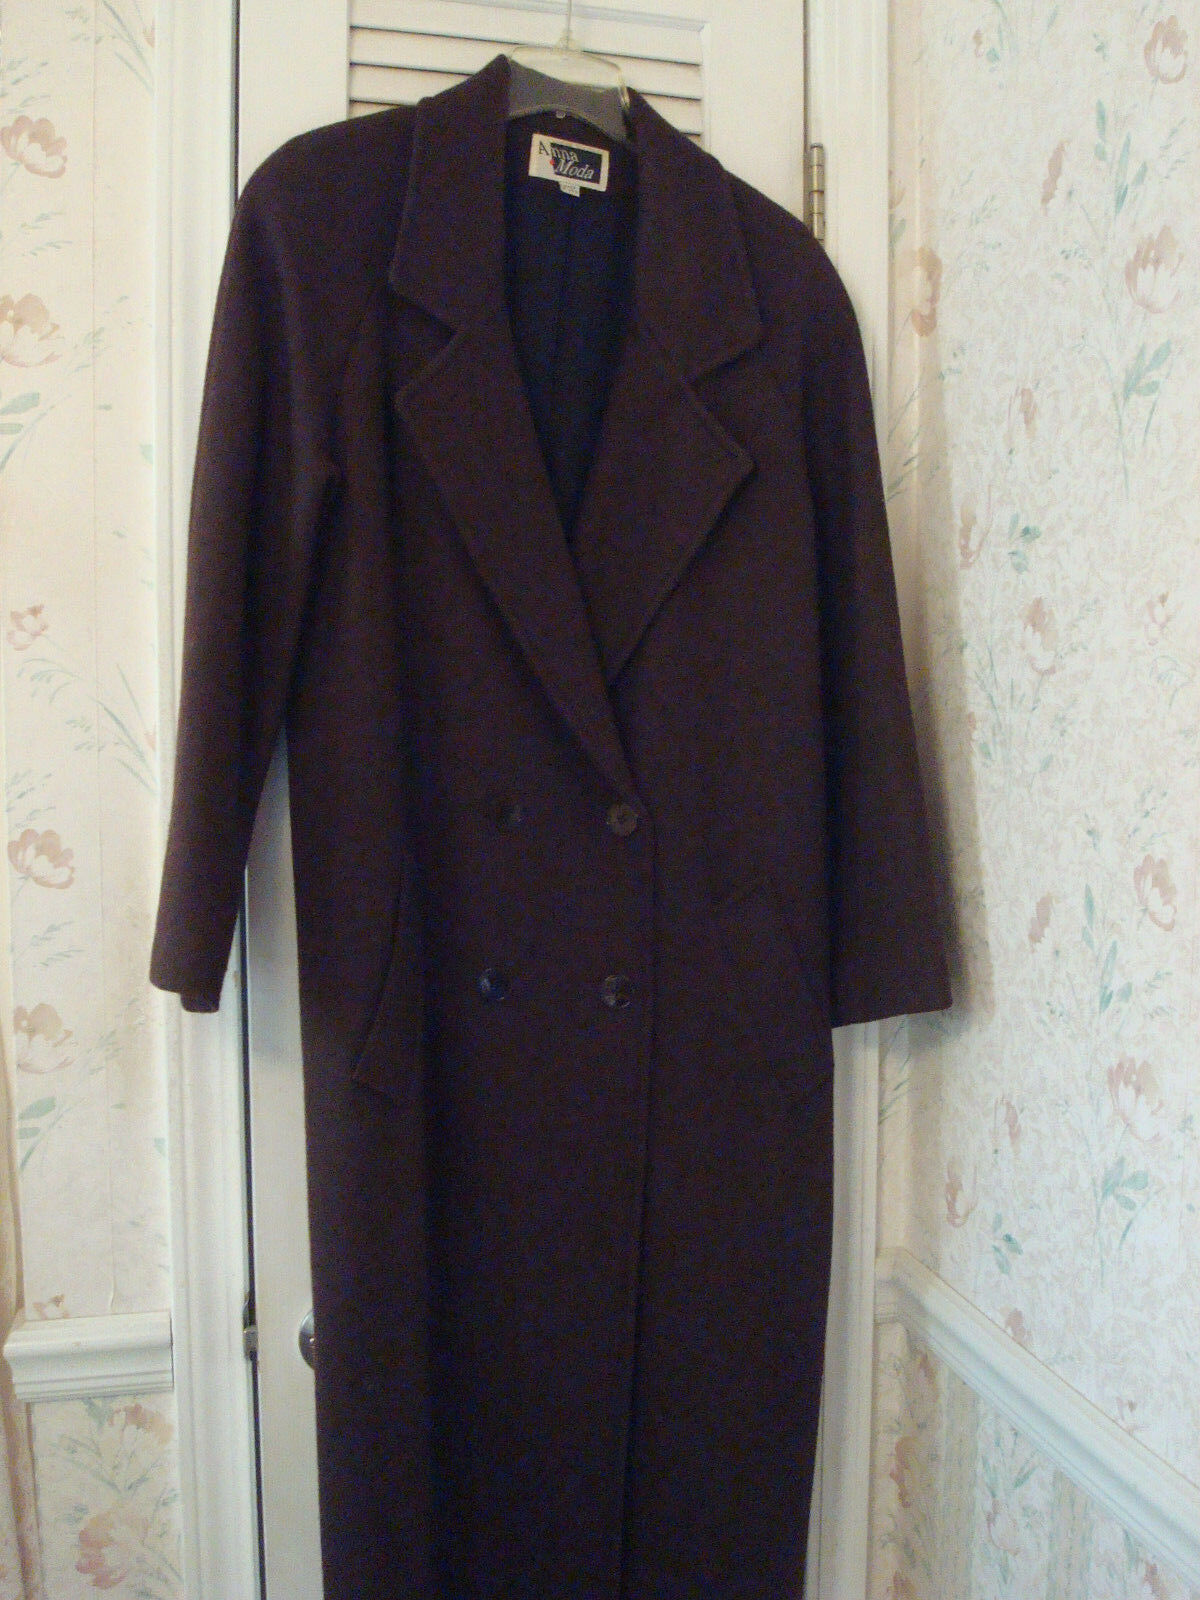 Size 16 Long Brown 100% Wool Coat  Made in USA  EUC